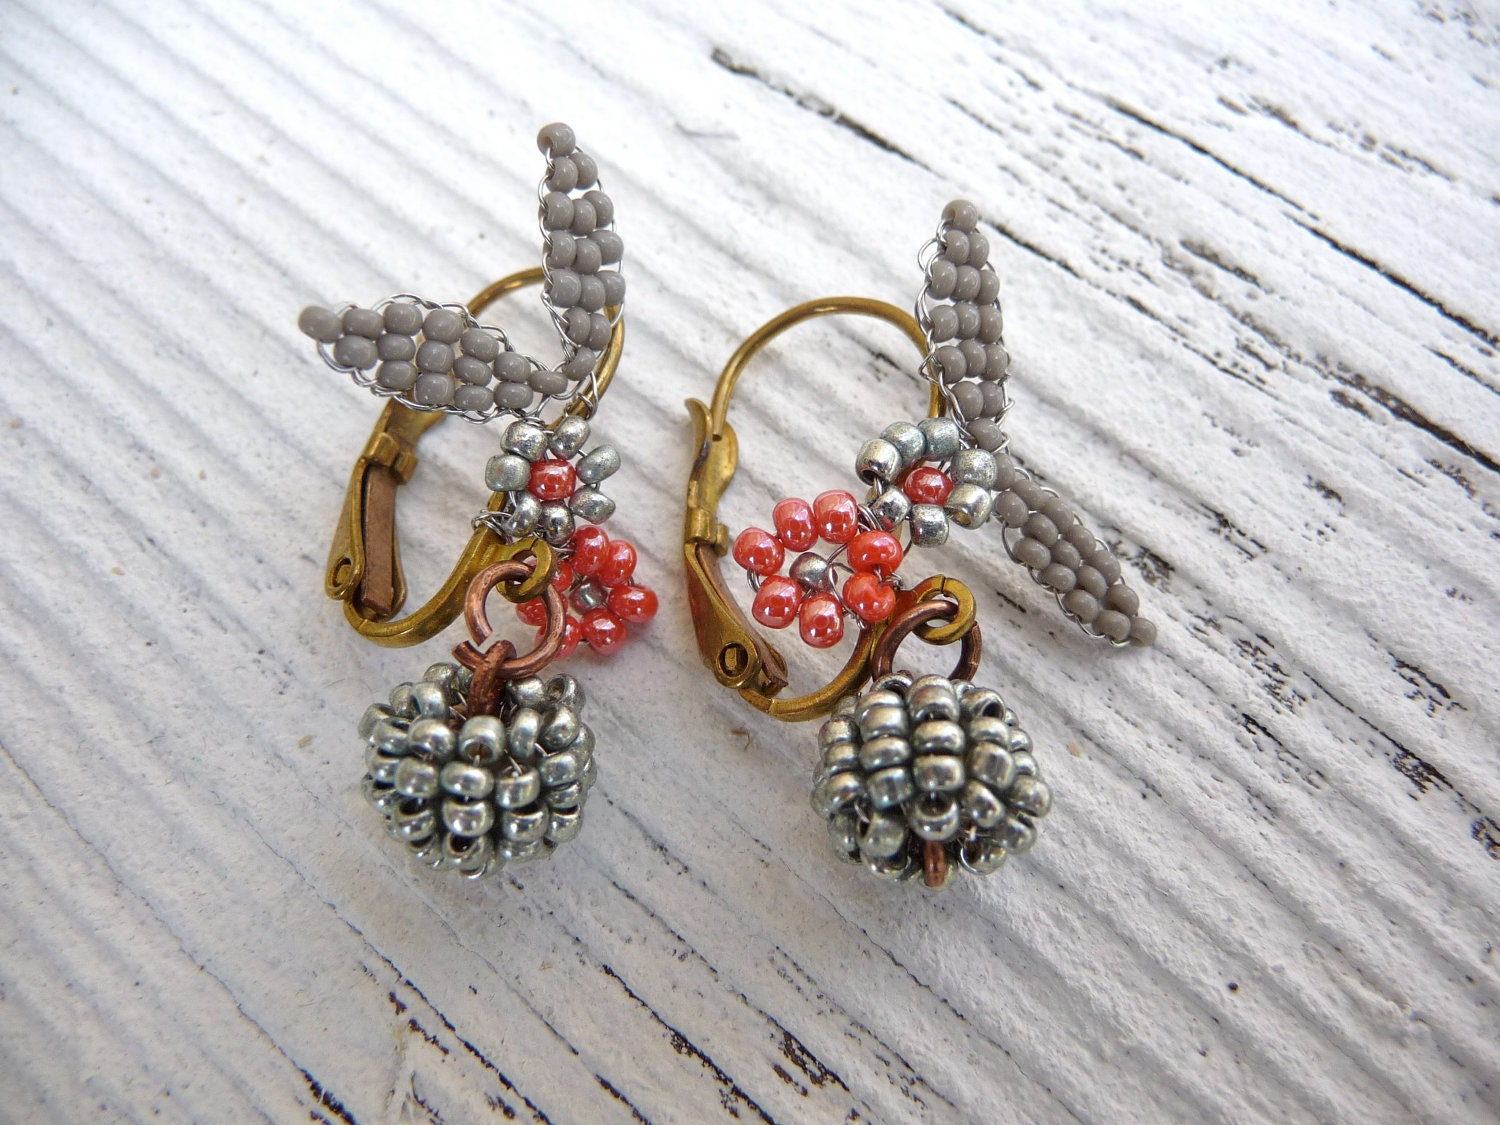 Fruits de la foret exquisite tiny Antique glass beads earrings